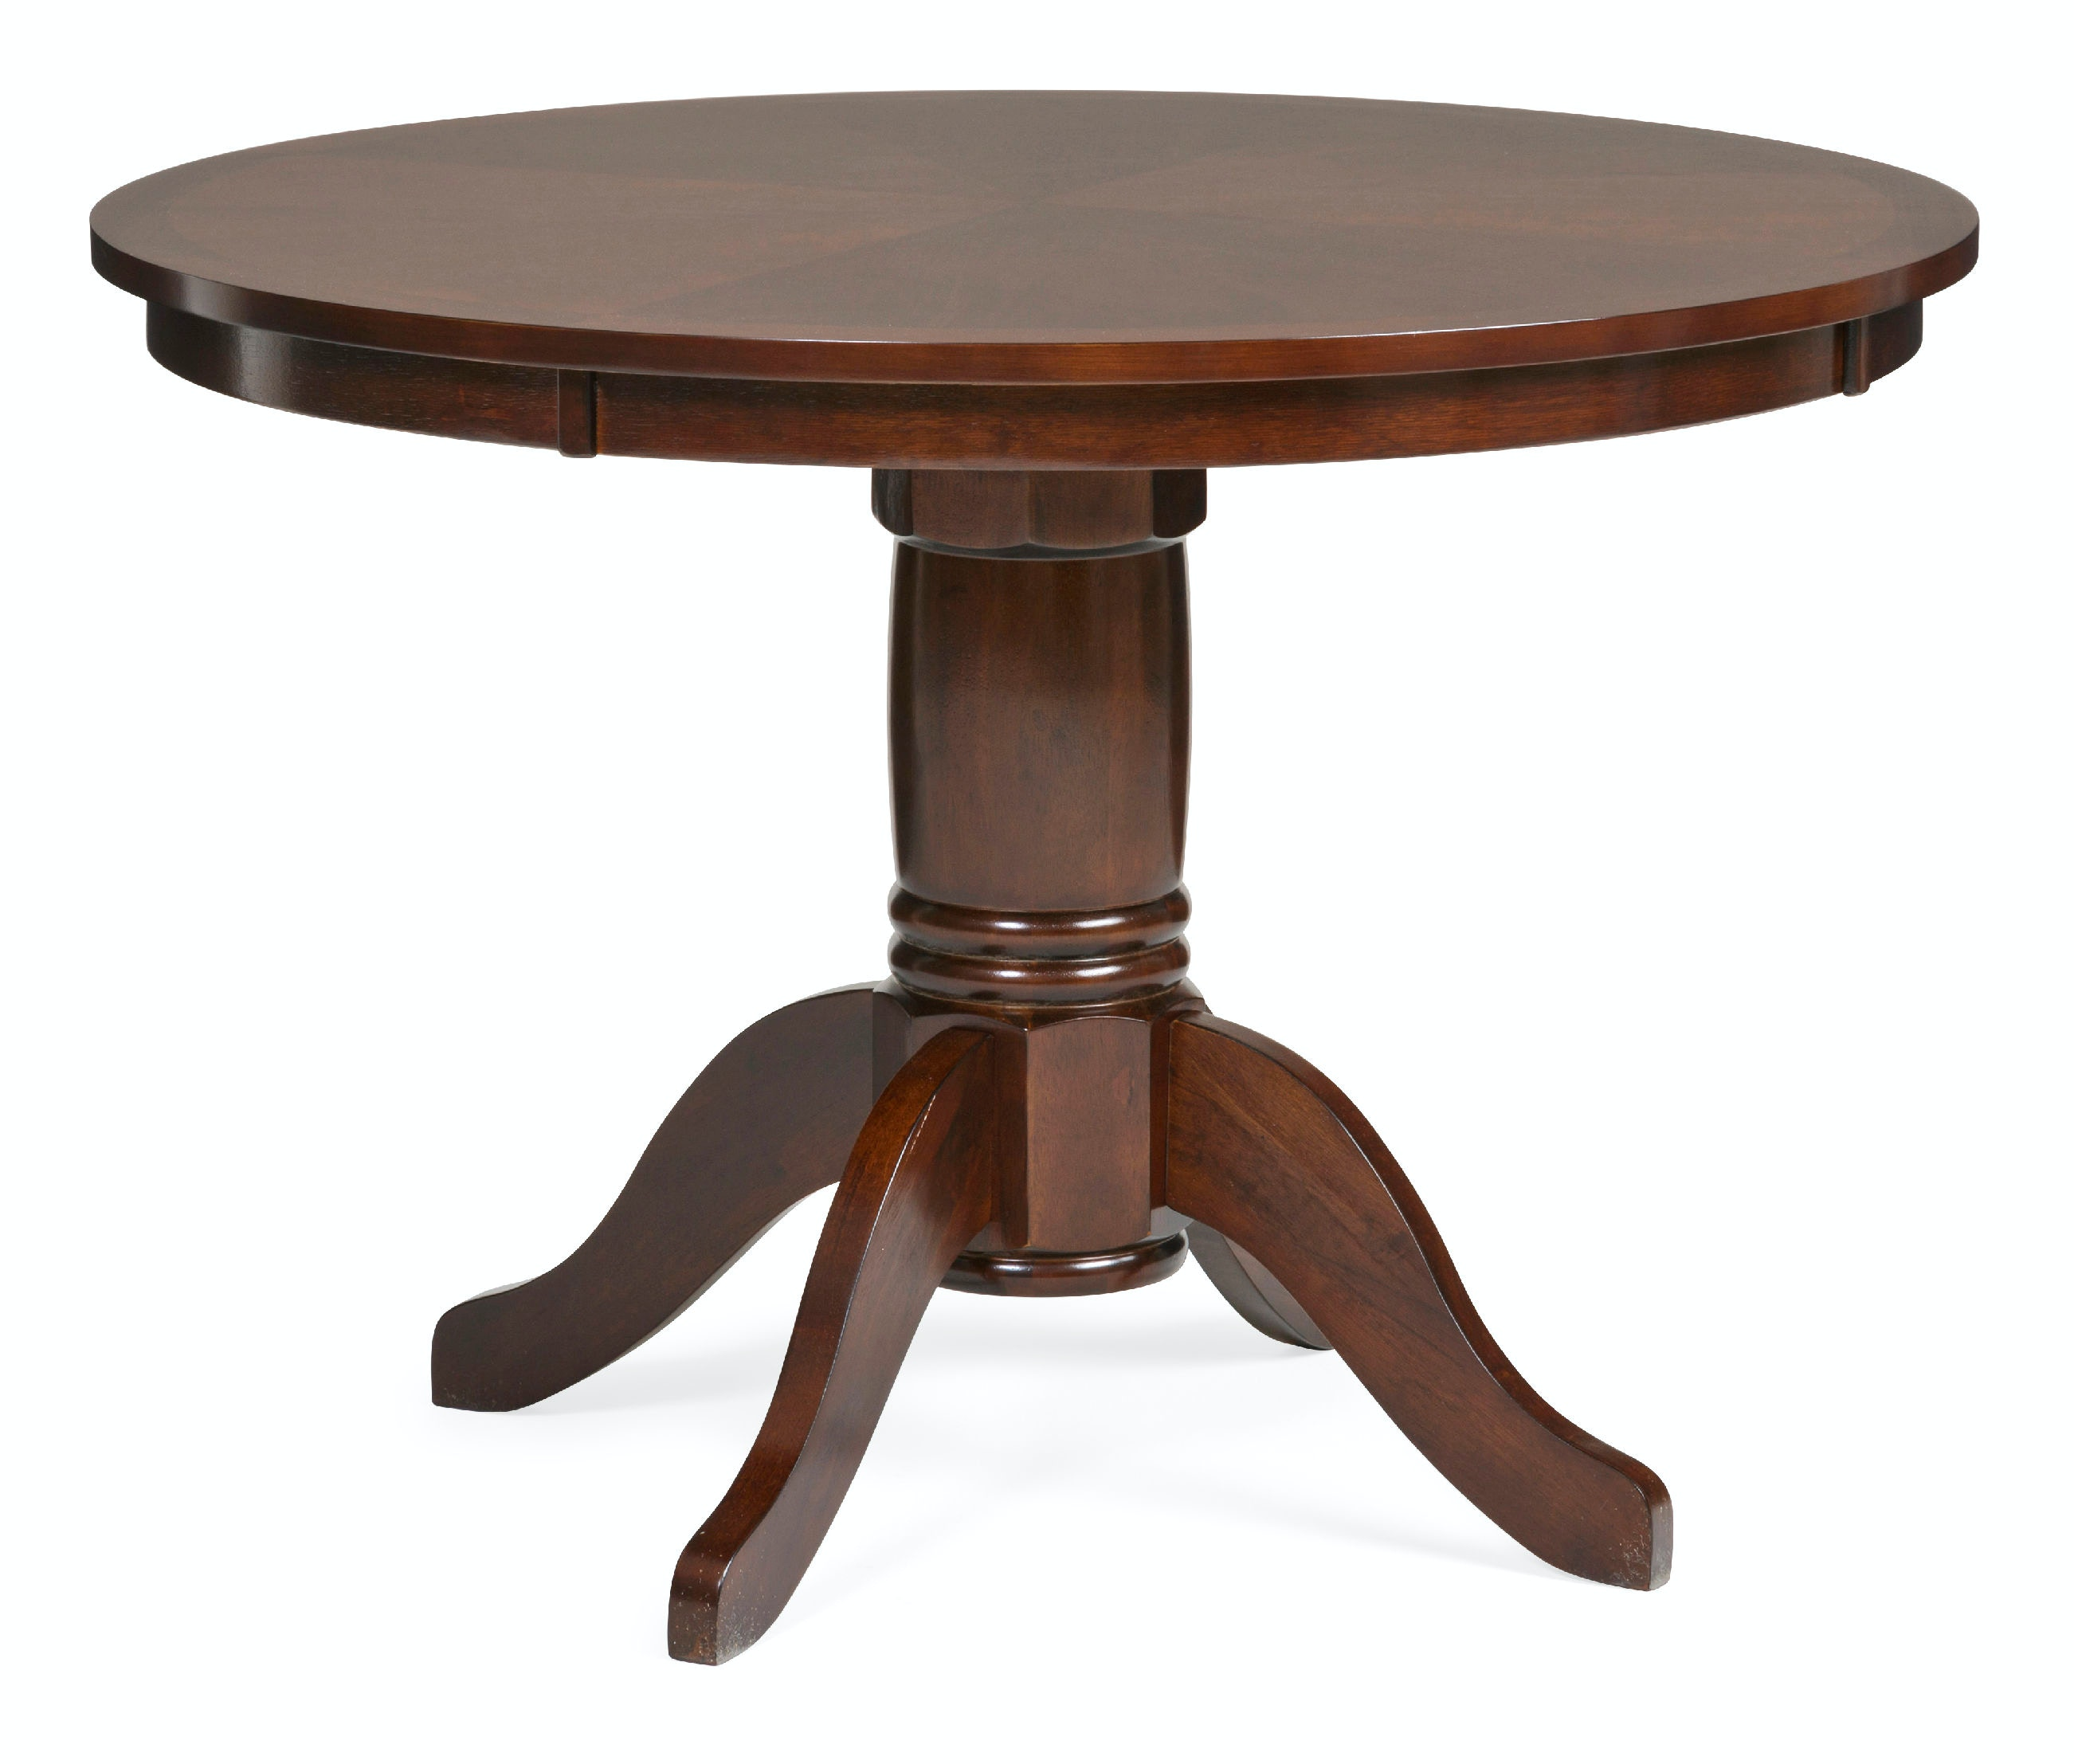 42 round table. Madera 42 Round Dining Table - Espresso Finish KT:39156 I